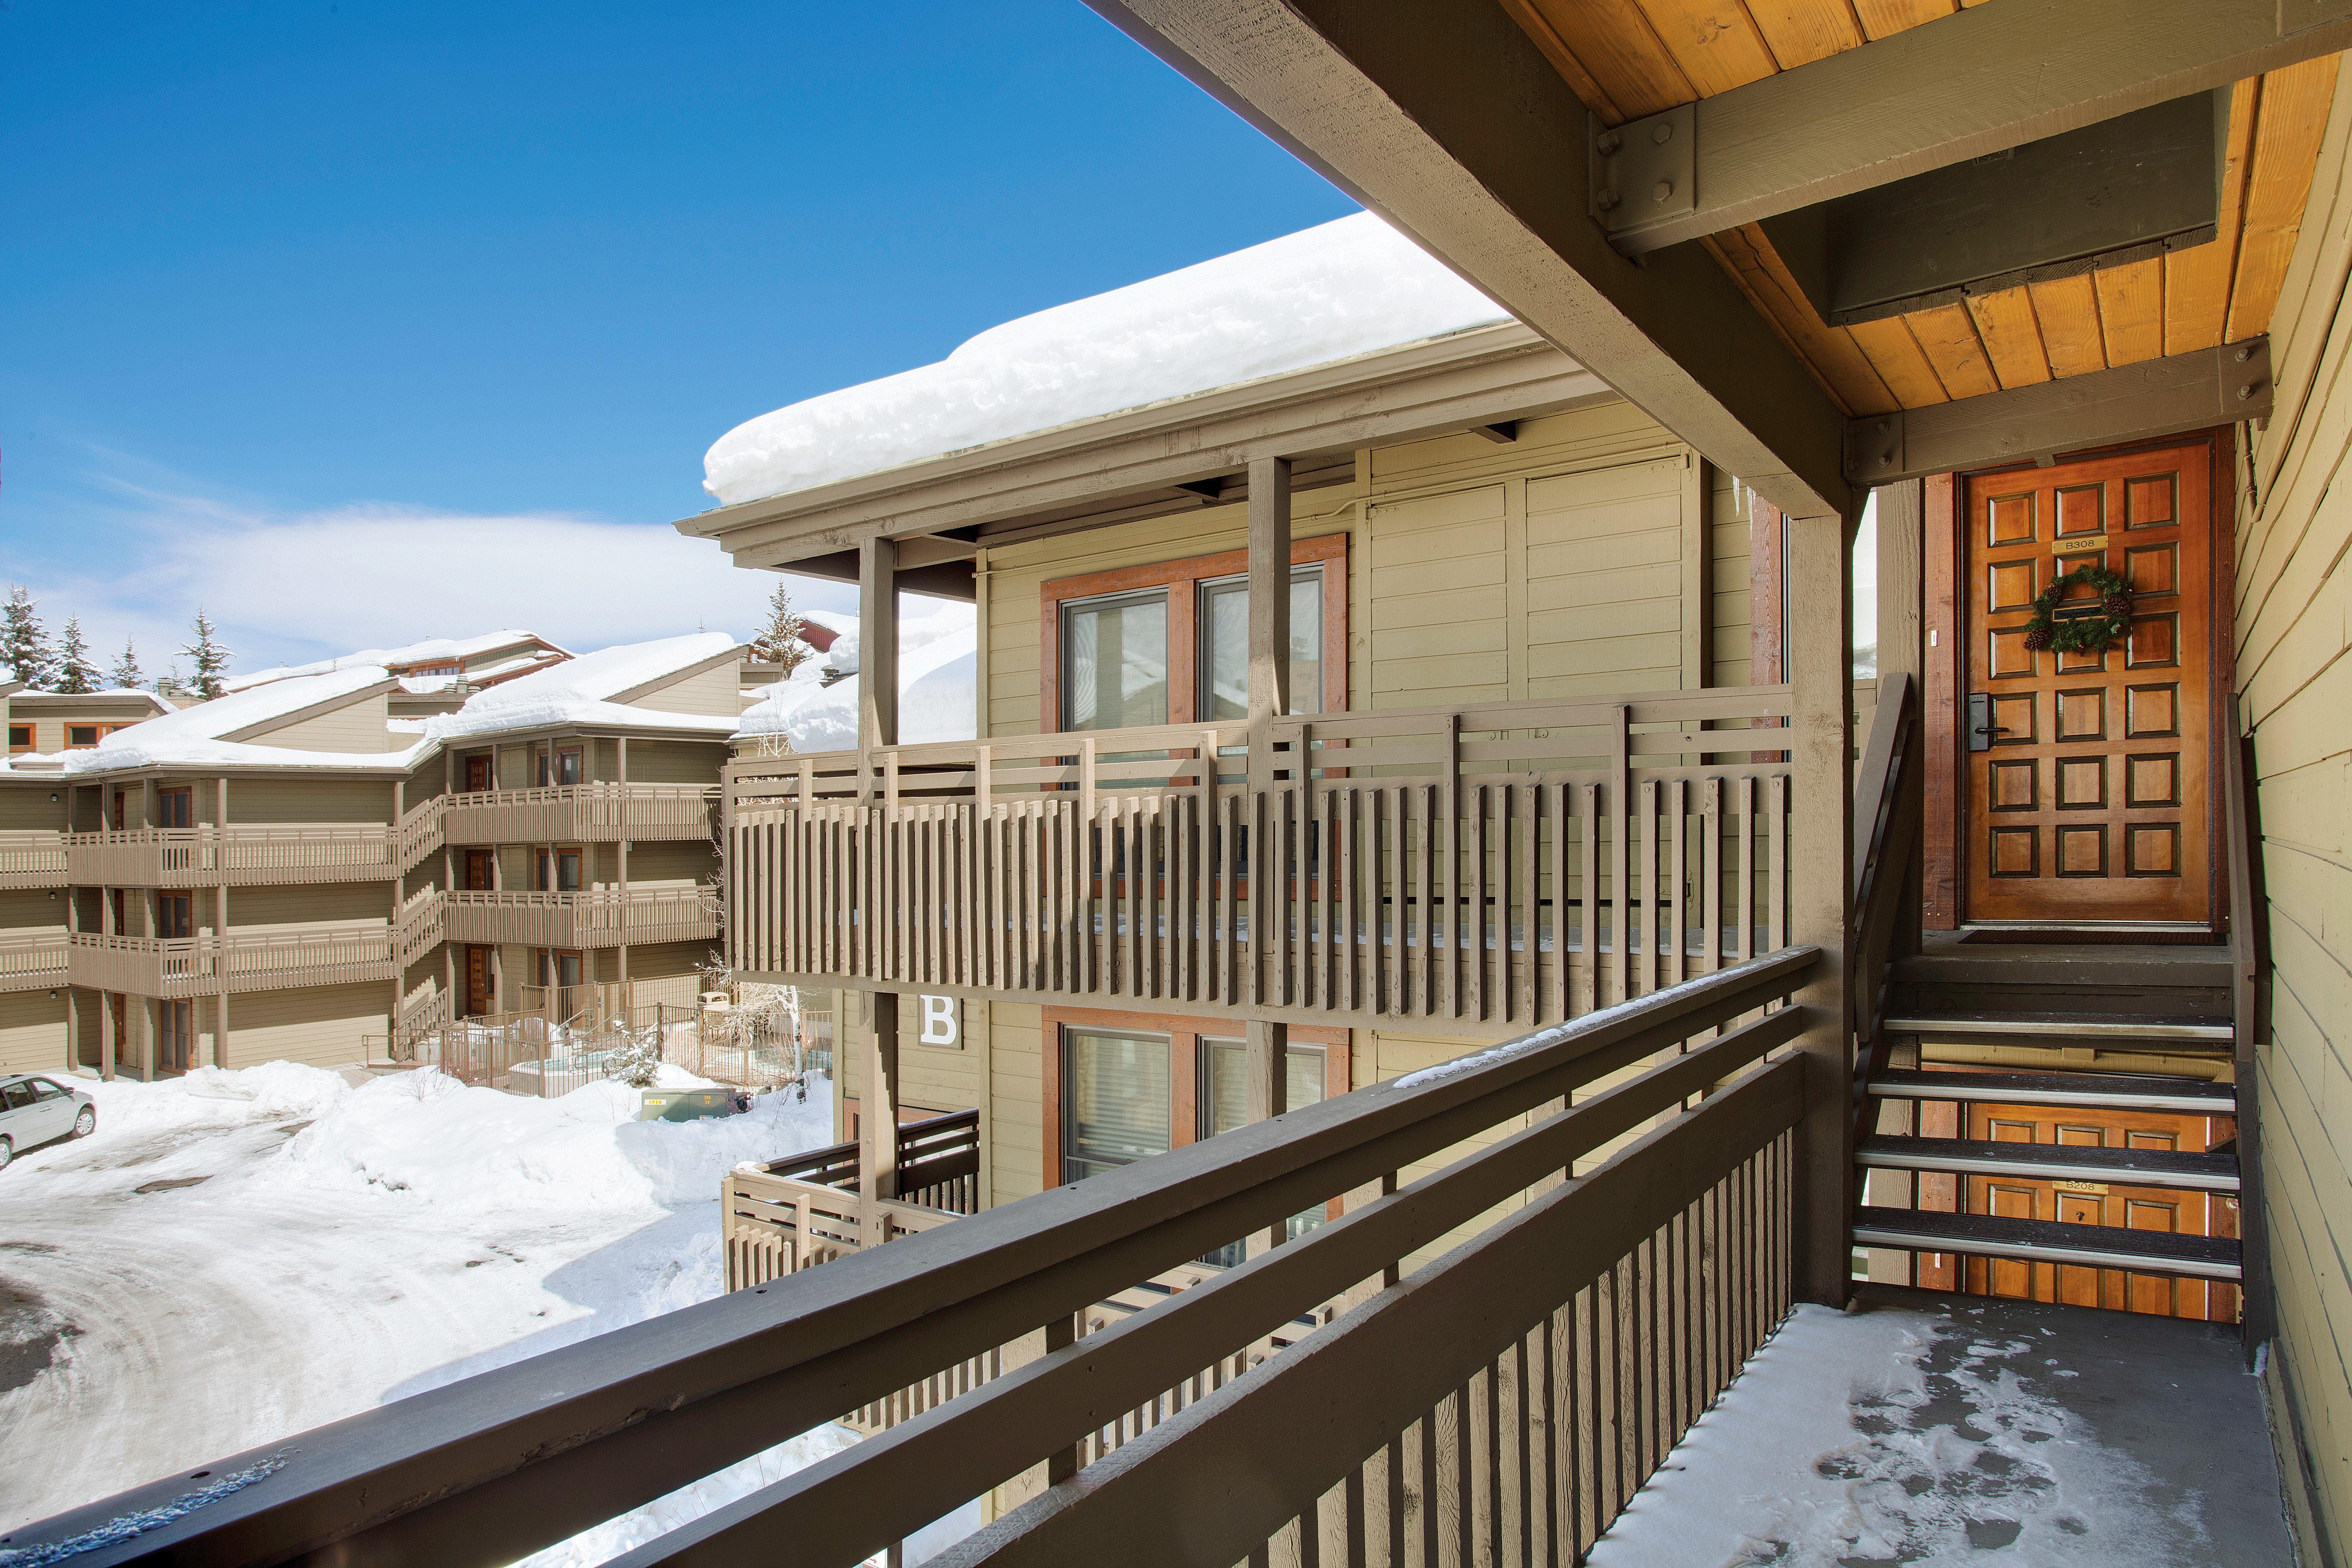 Grounds Lodge Outdoors Scenic views Ski property building house Architecture home Resort outdoor structure porch